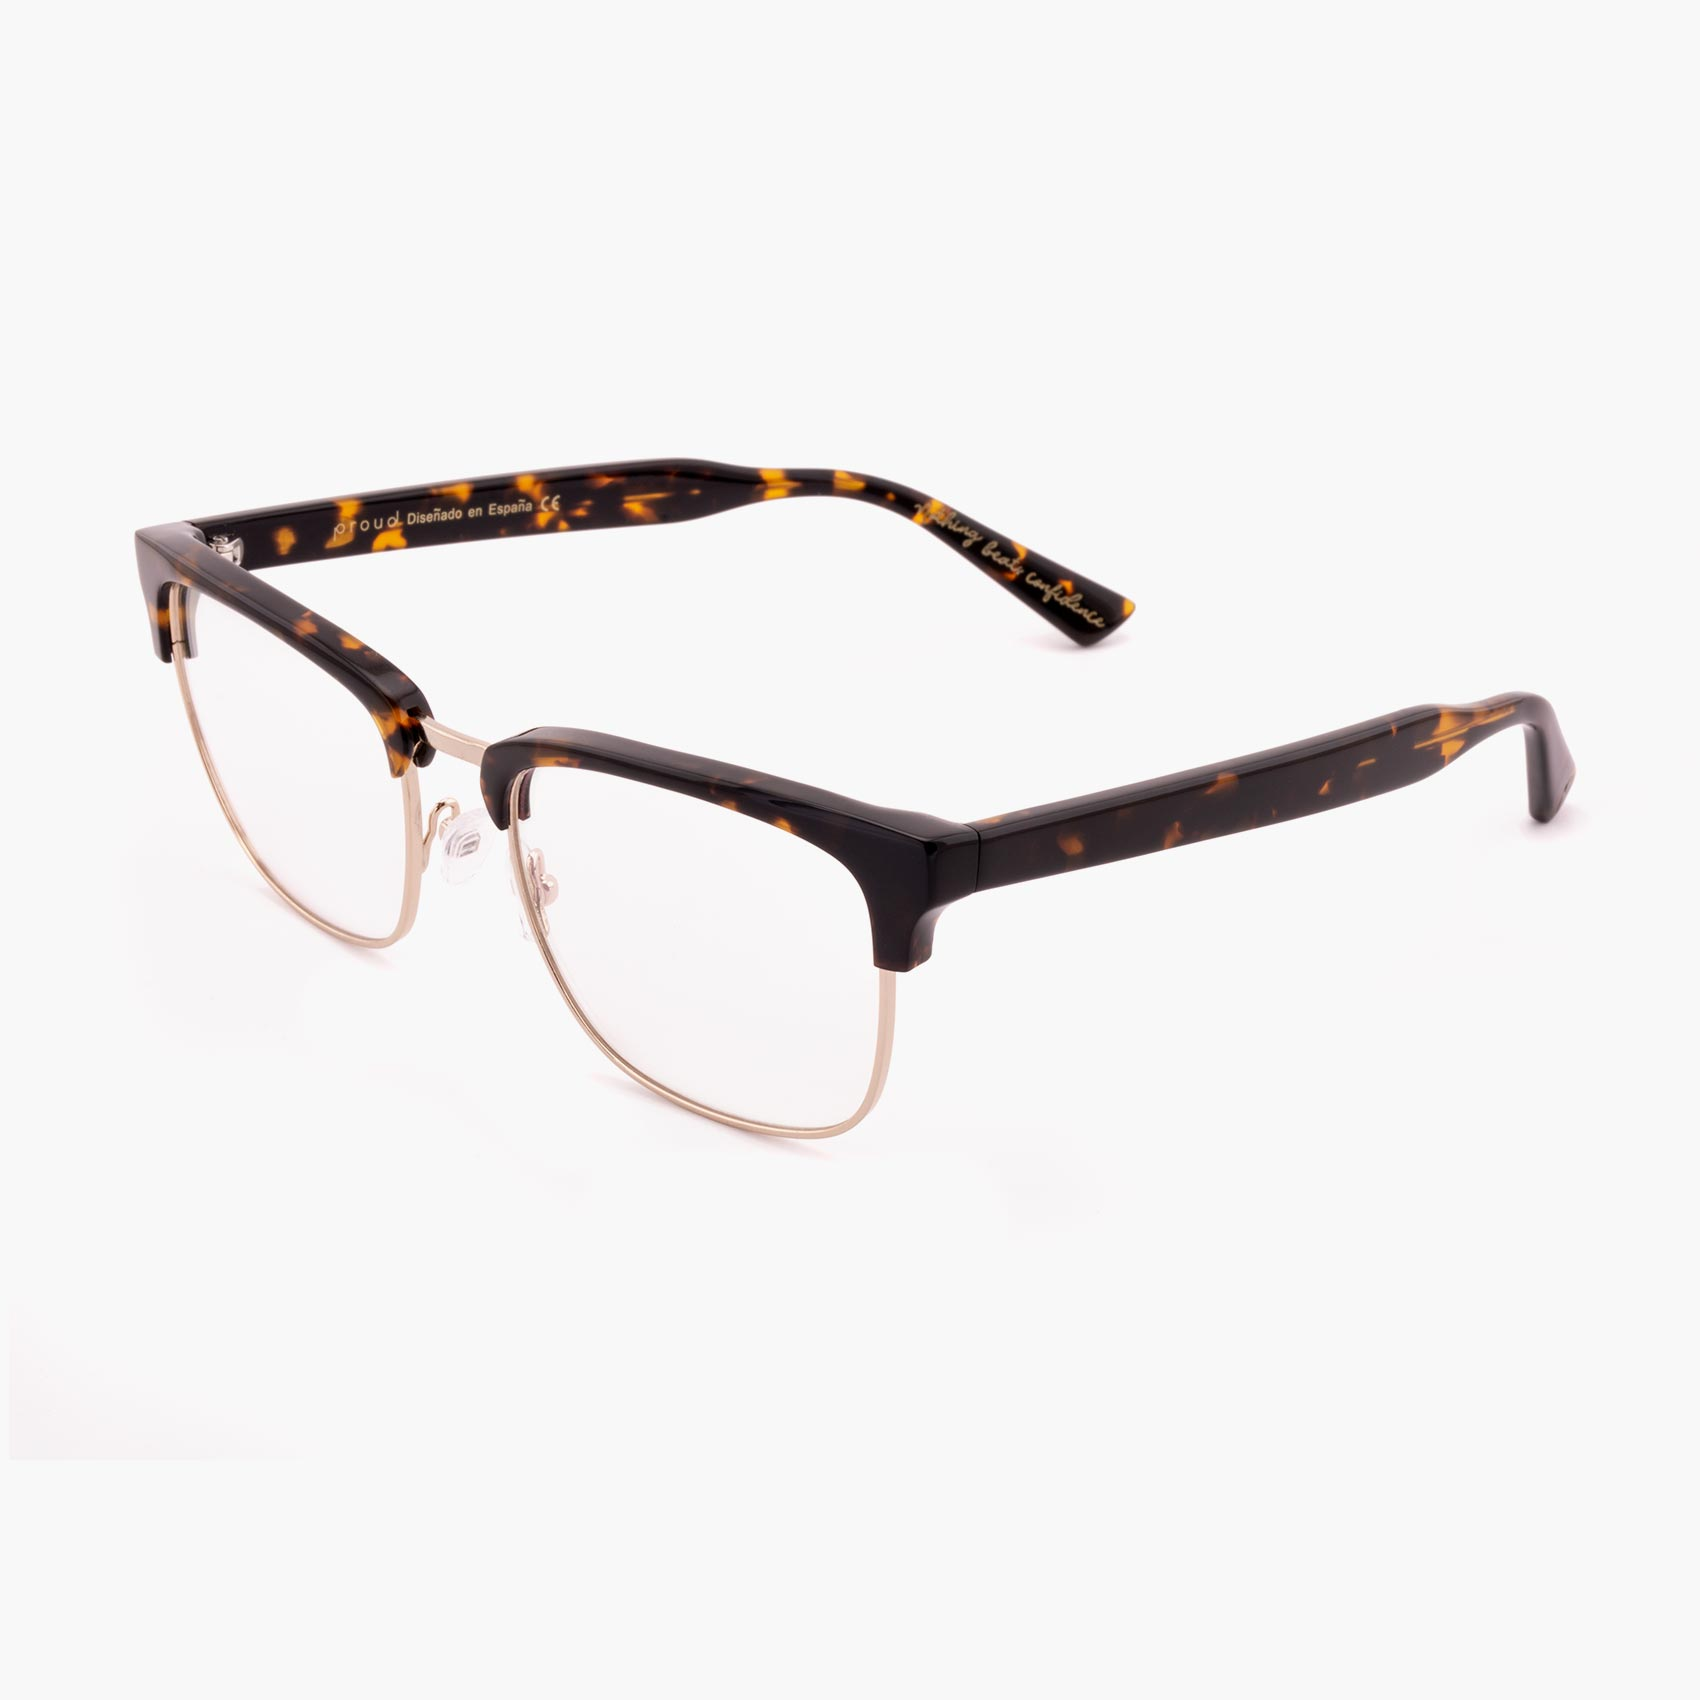 Proud eyewear Hopkins C1 P clubmaster havana